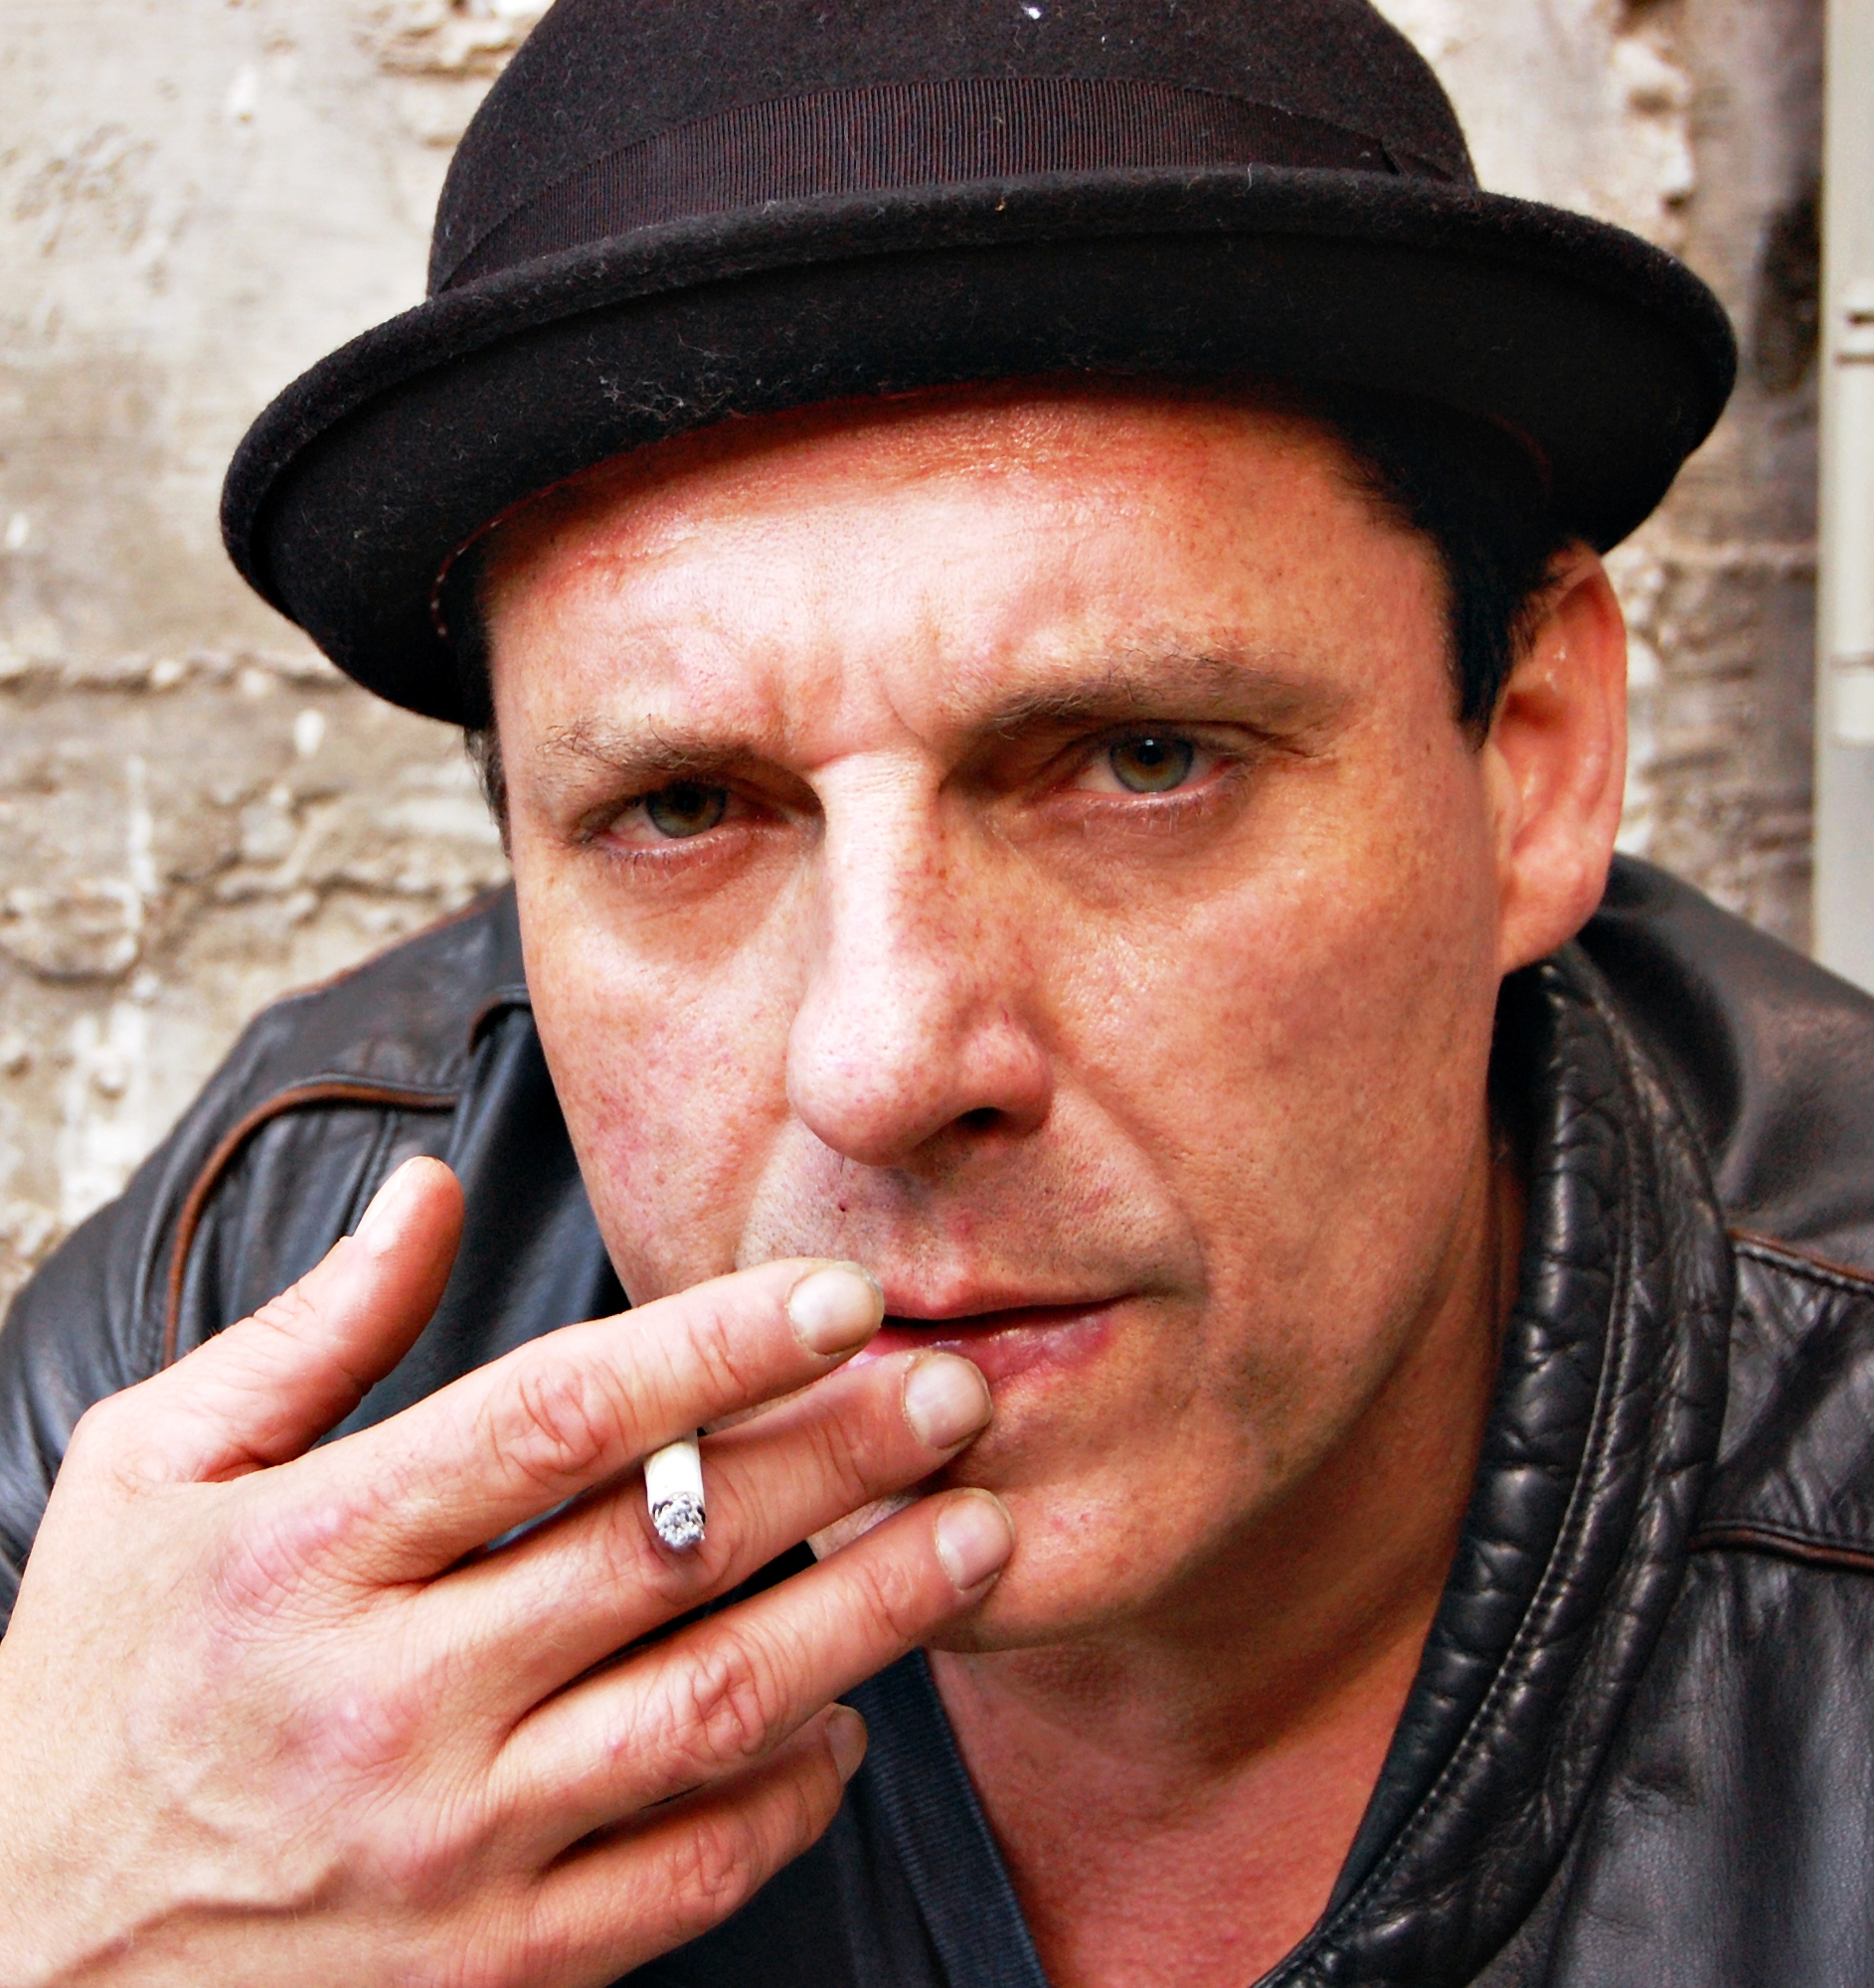 Tom Sizemore smoking a cigarette (or weed)